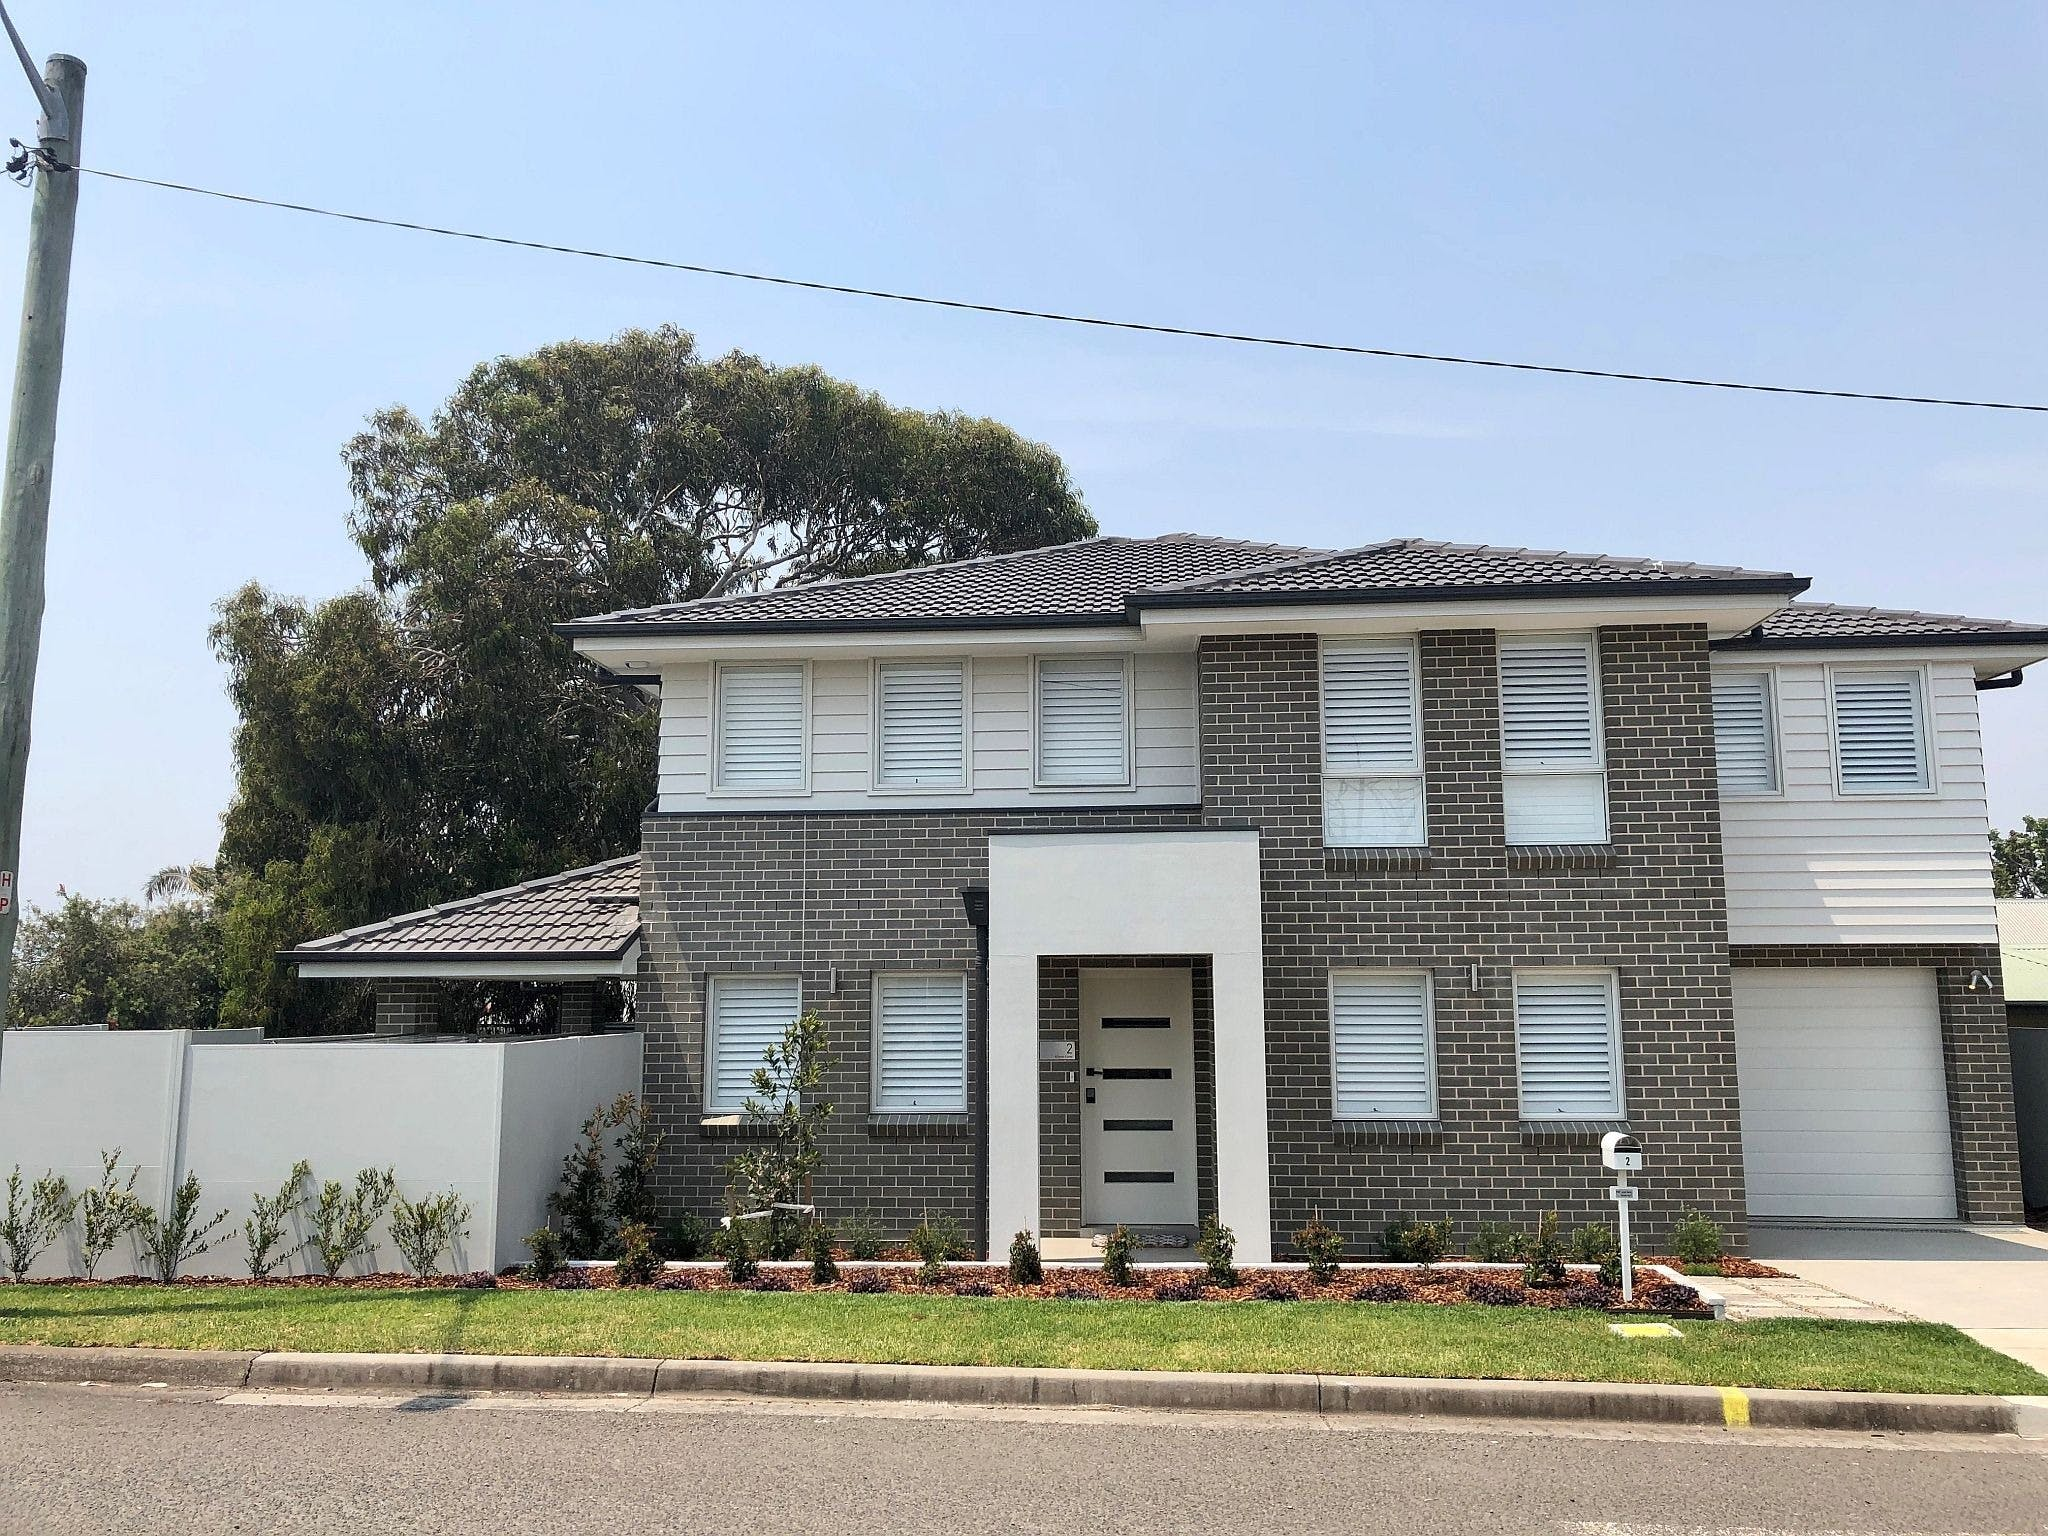 2 Allens Lane - Accommodation Coffs Harbour